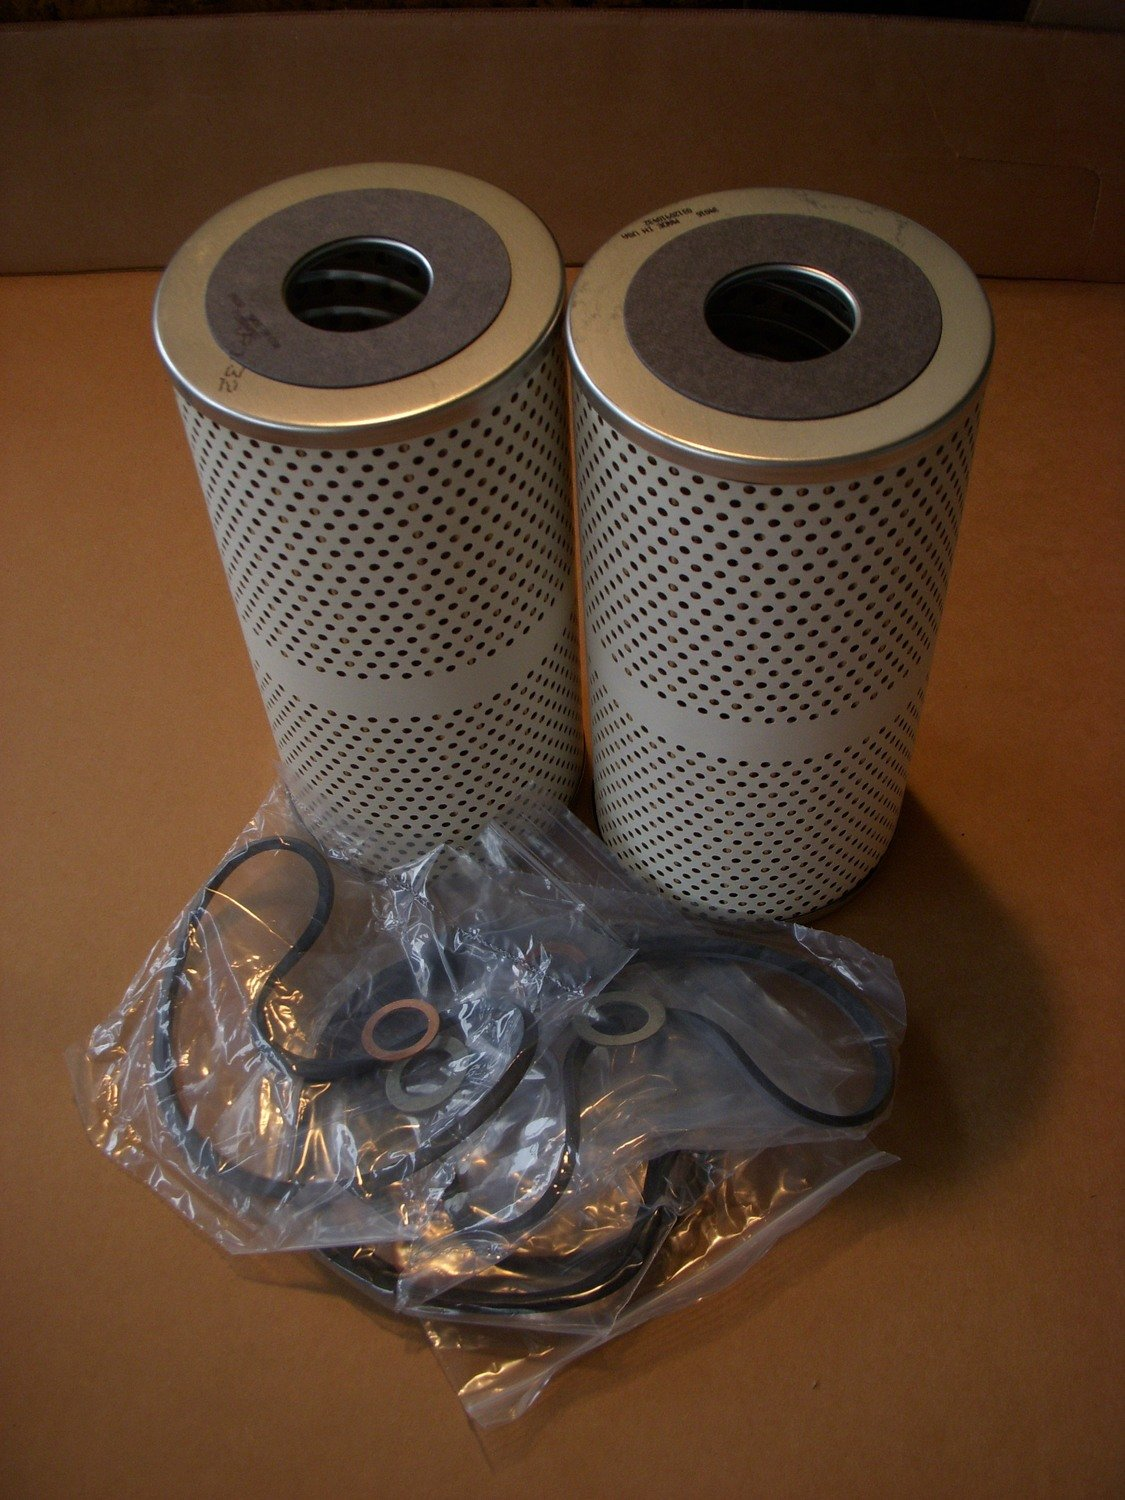 2.5 and 5 ton multi-fuel oil filter set